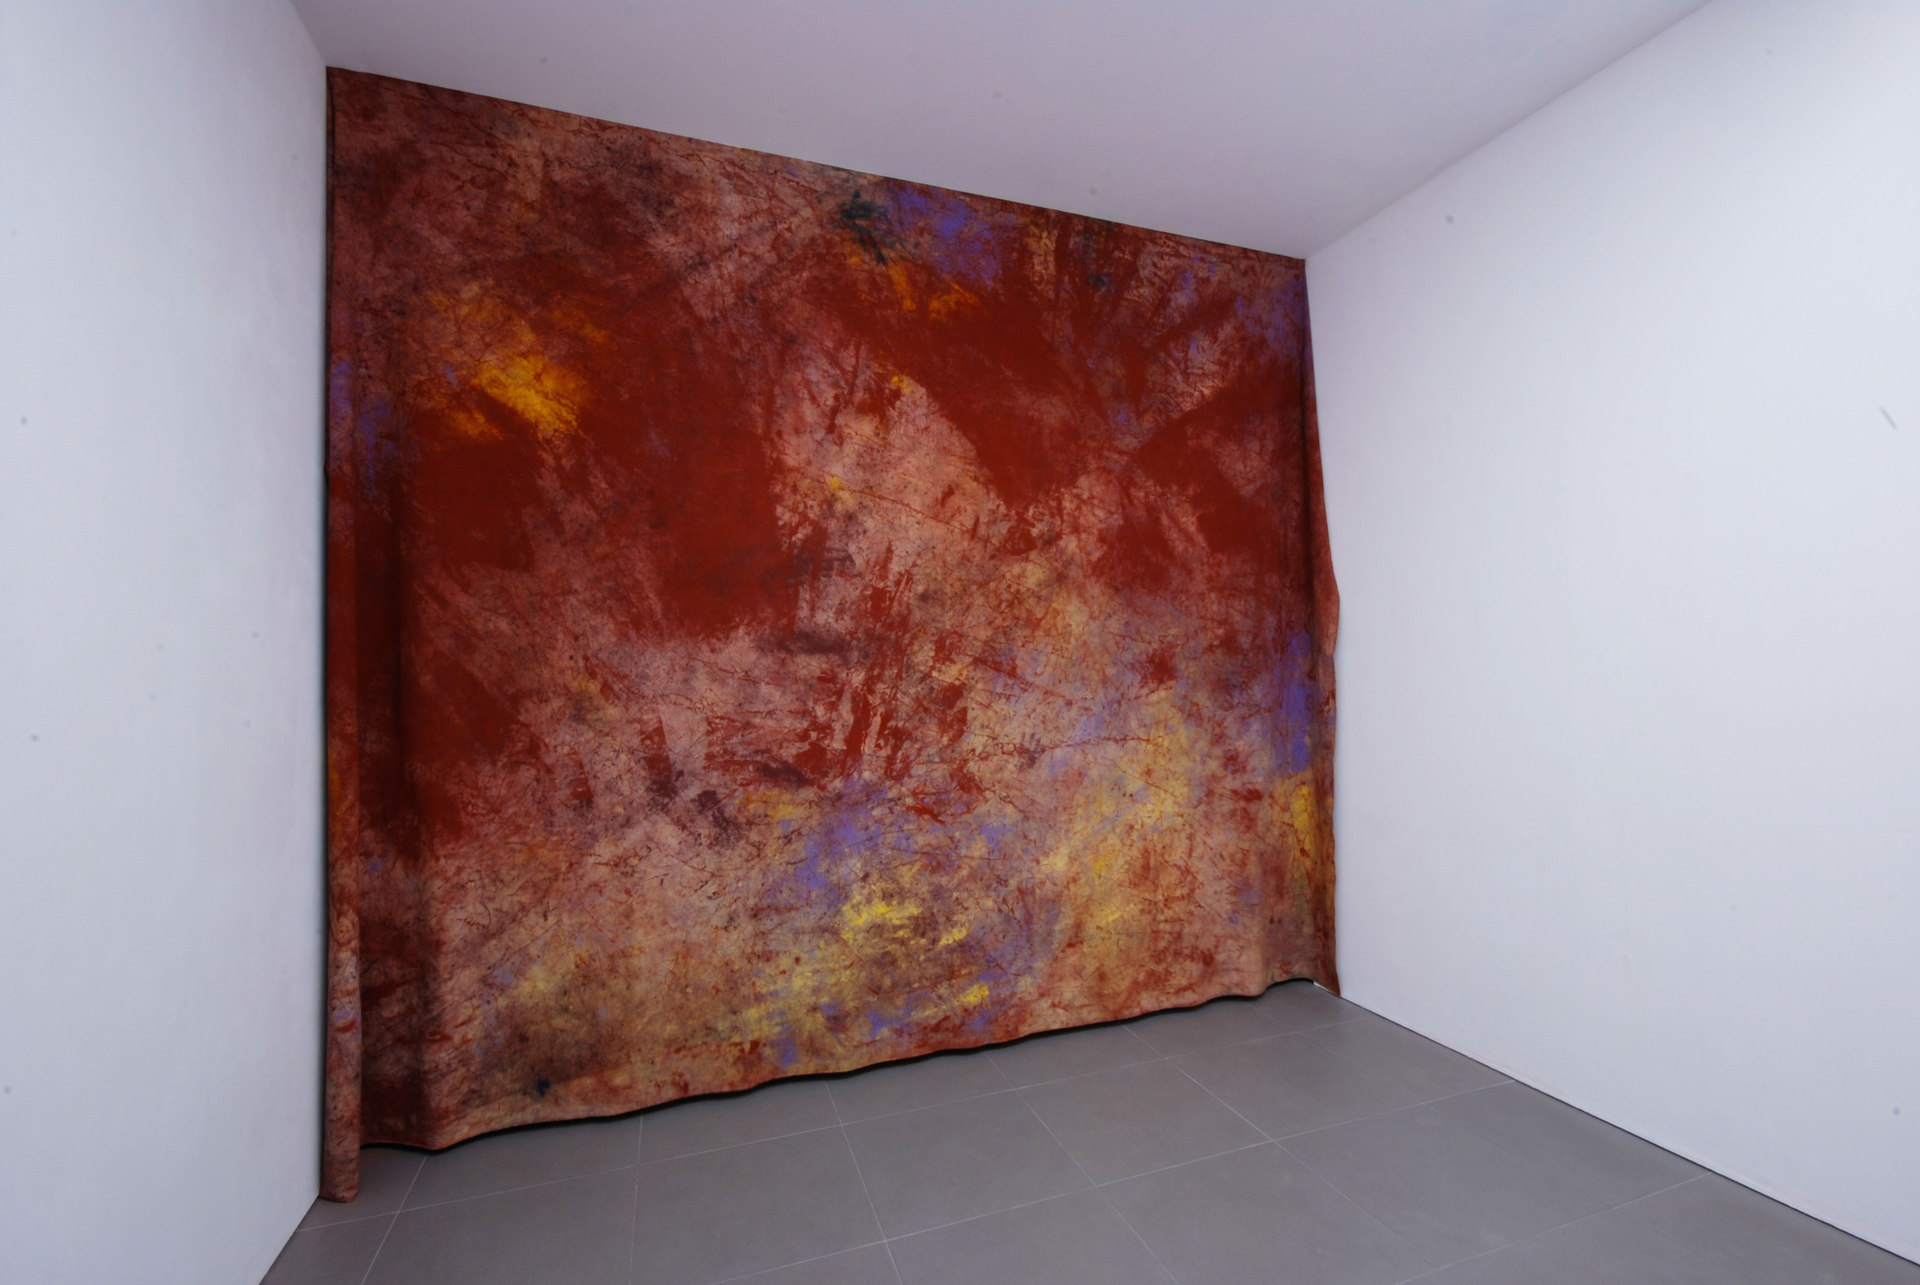 Jessica Warboys, Victory Park Tree Painting, 'Sea Painting, Dunwich', 2011, canvas, pigment, Cell Project Space